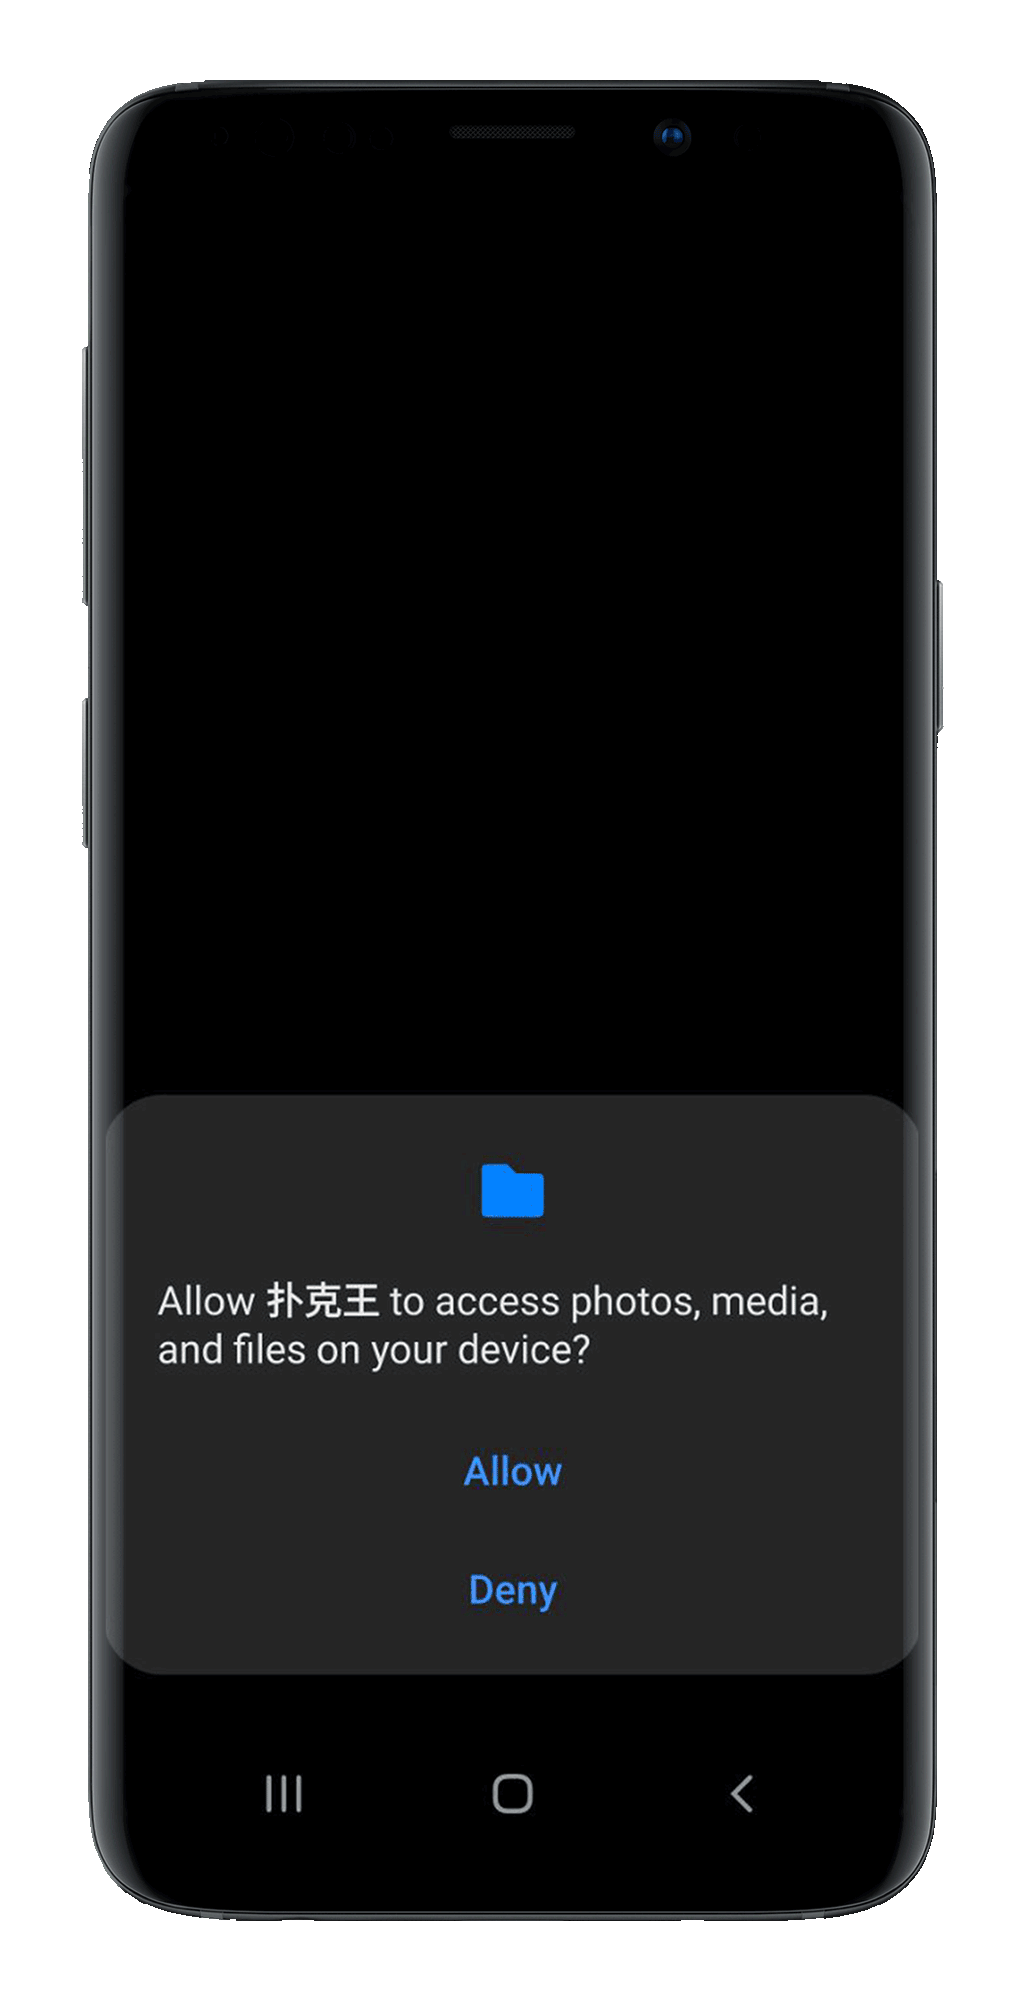 Allow the App to use phone's features: Access photos, media and files